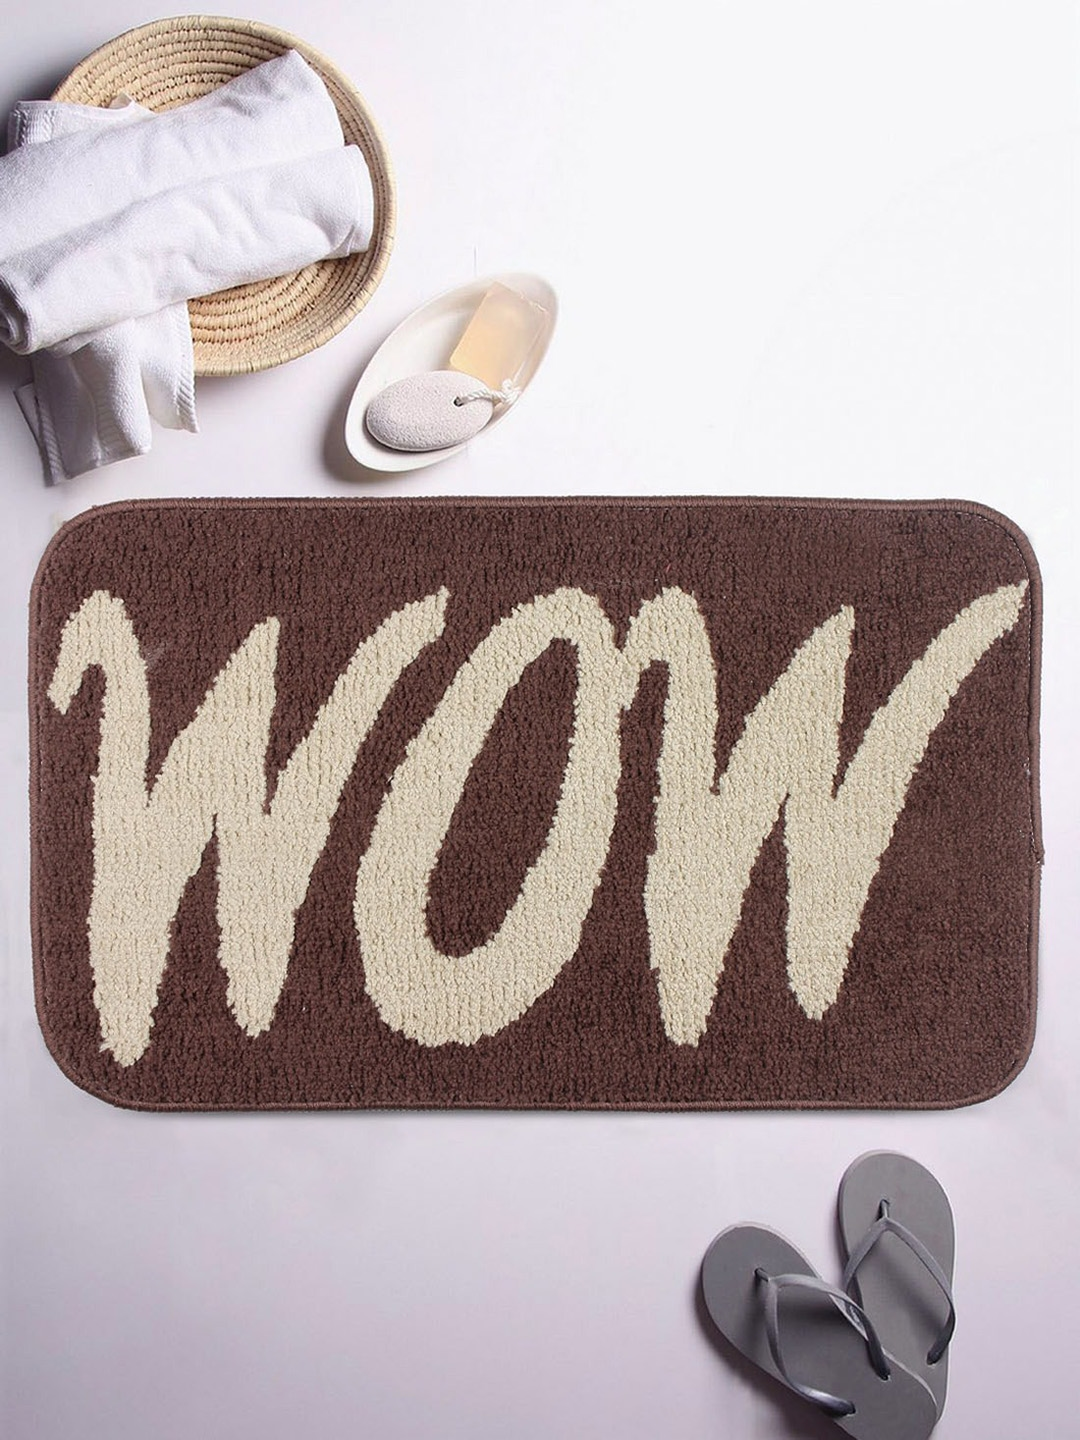 ROMEE Brown   Beige Printed Cotton Bath Mat